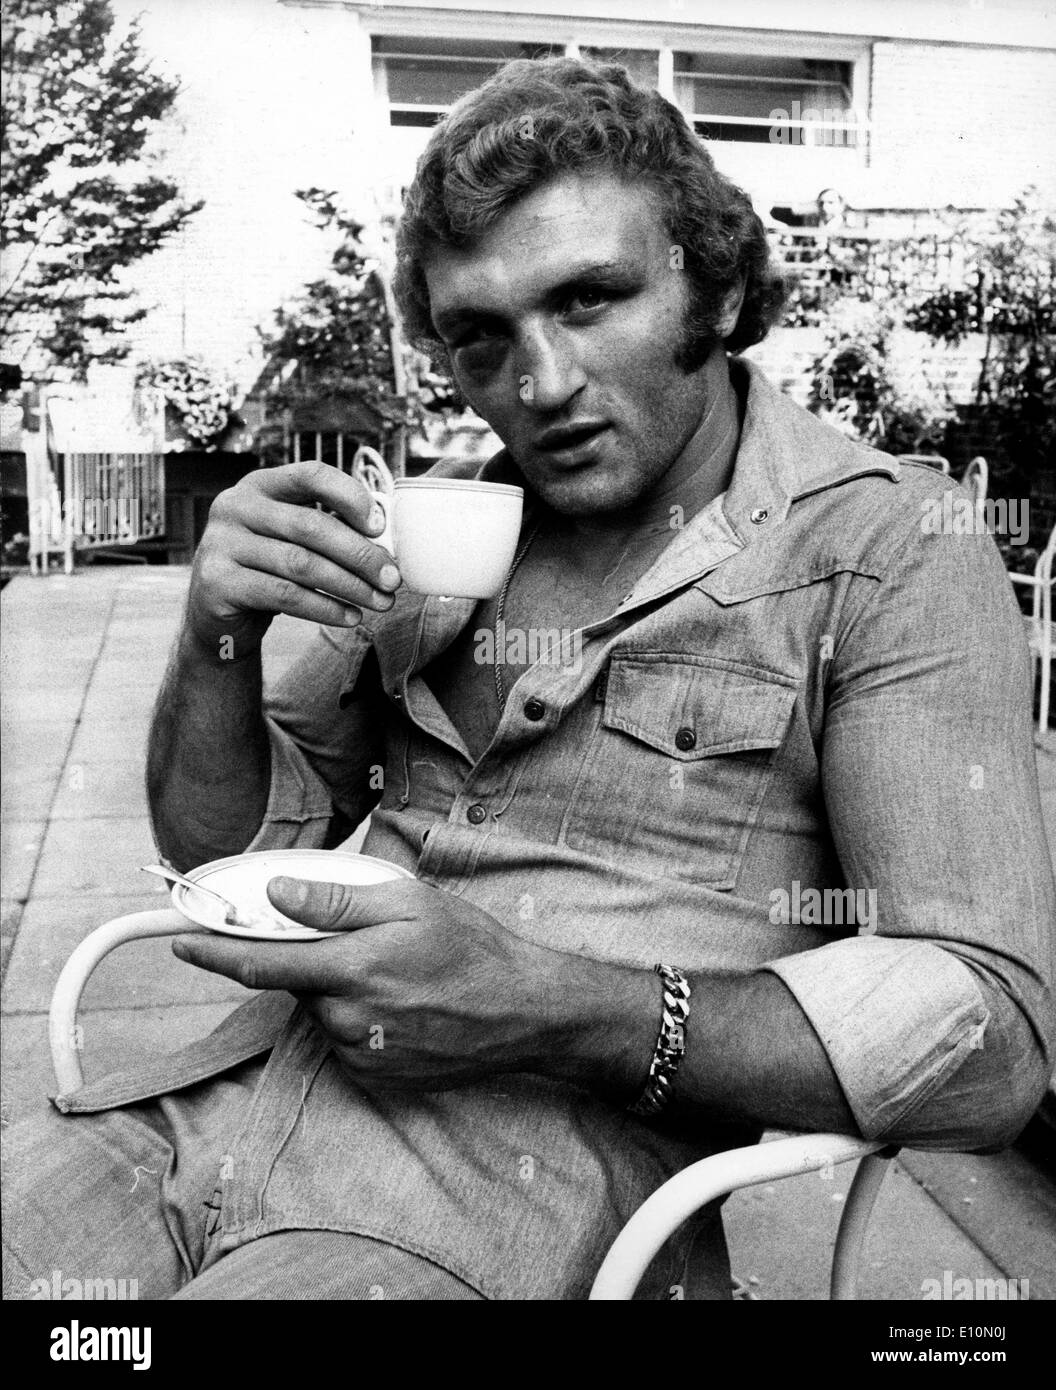 JOE BUGNER the British European Heavyweight Champion enjoying a cup of tea at the Kensington Close Hotel - Stock Image